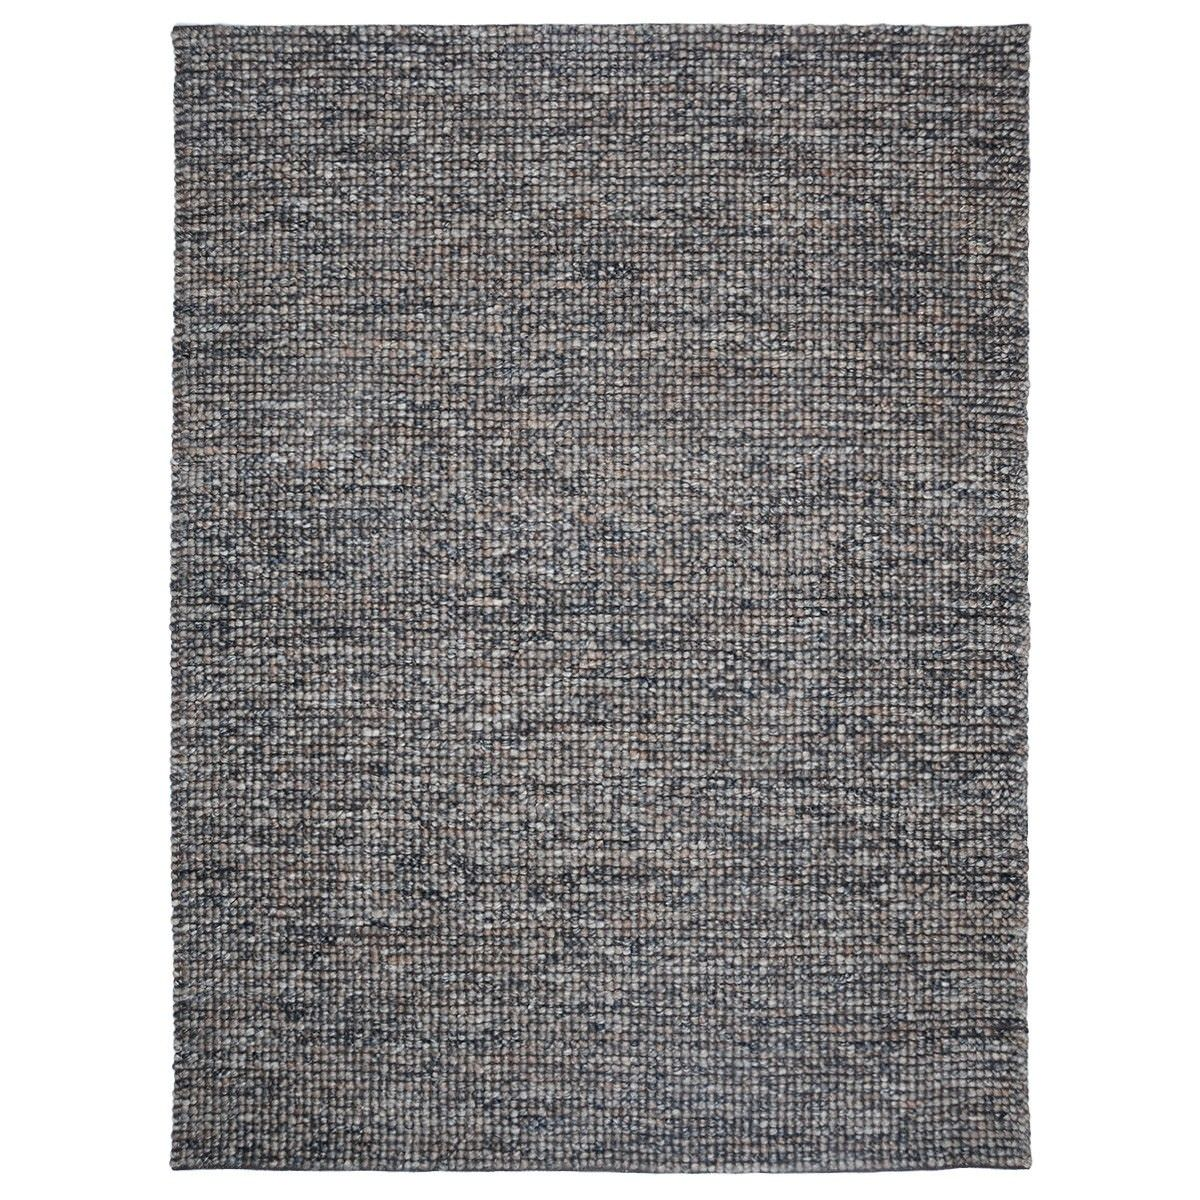 Modern Berber Handwoven Wool Rug, 160x120cm, Cooma